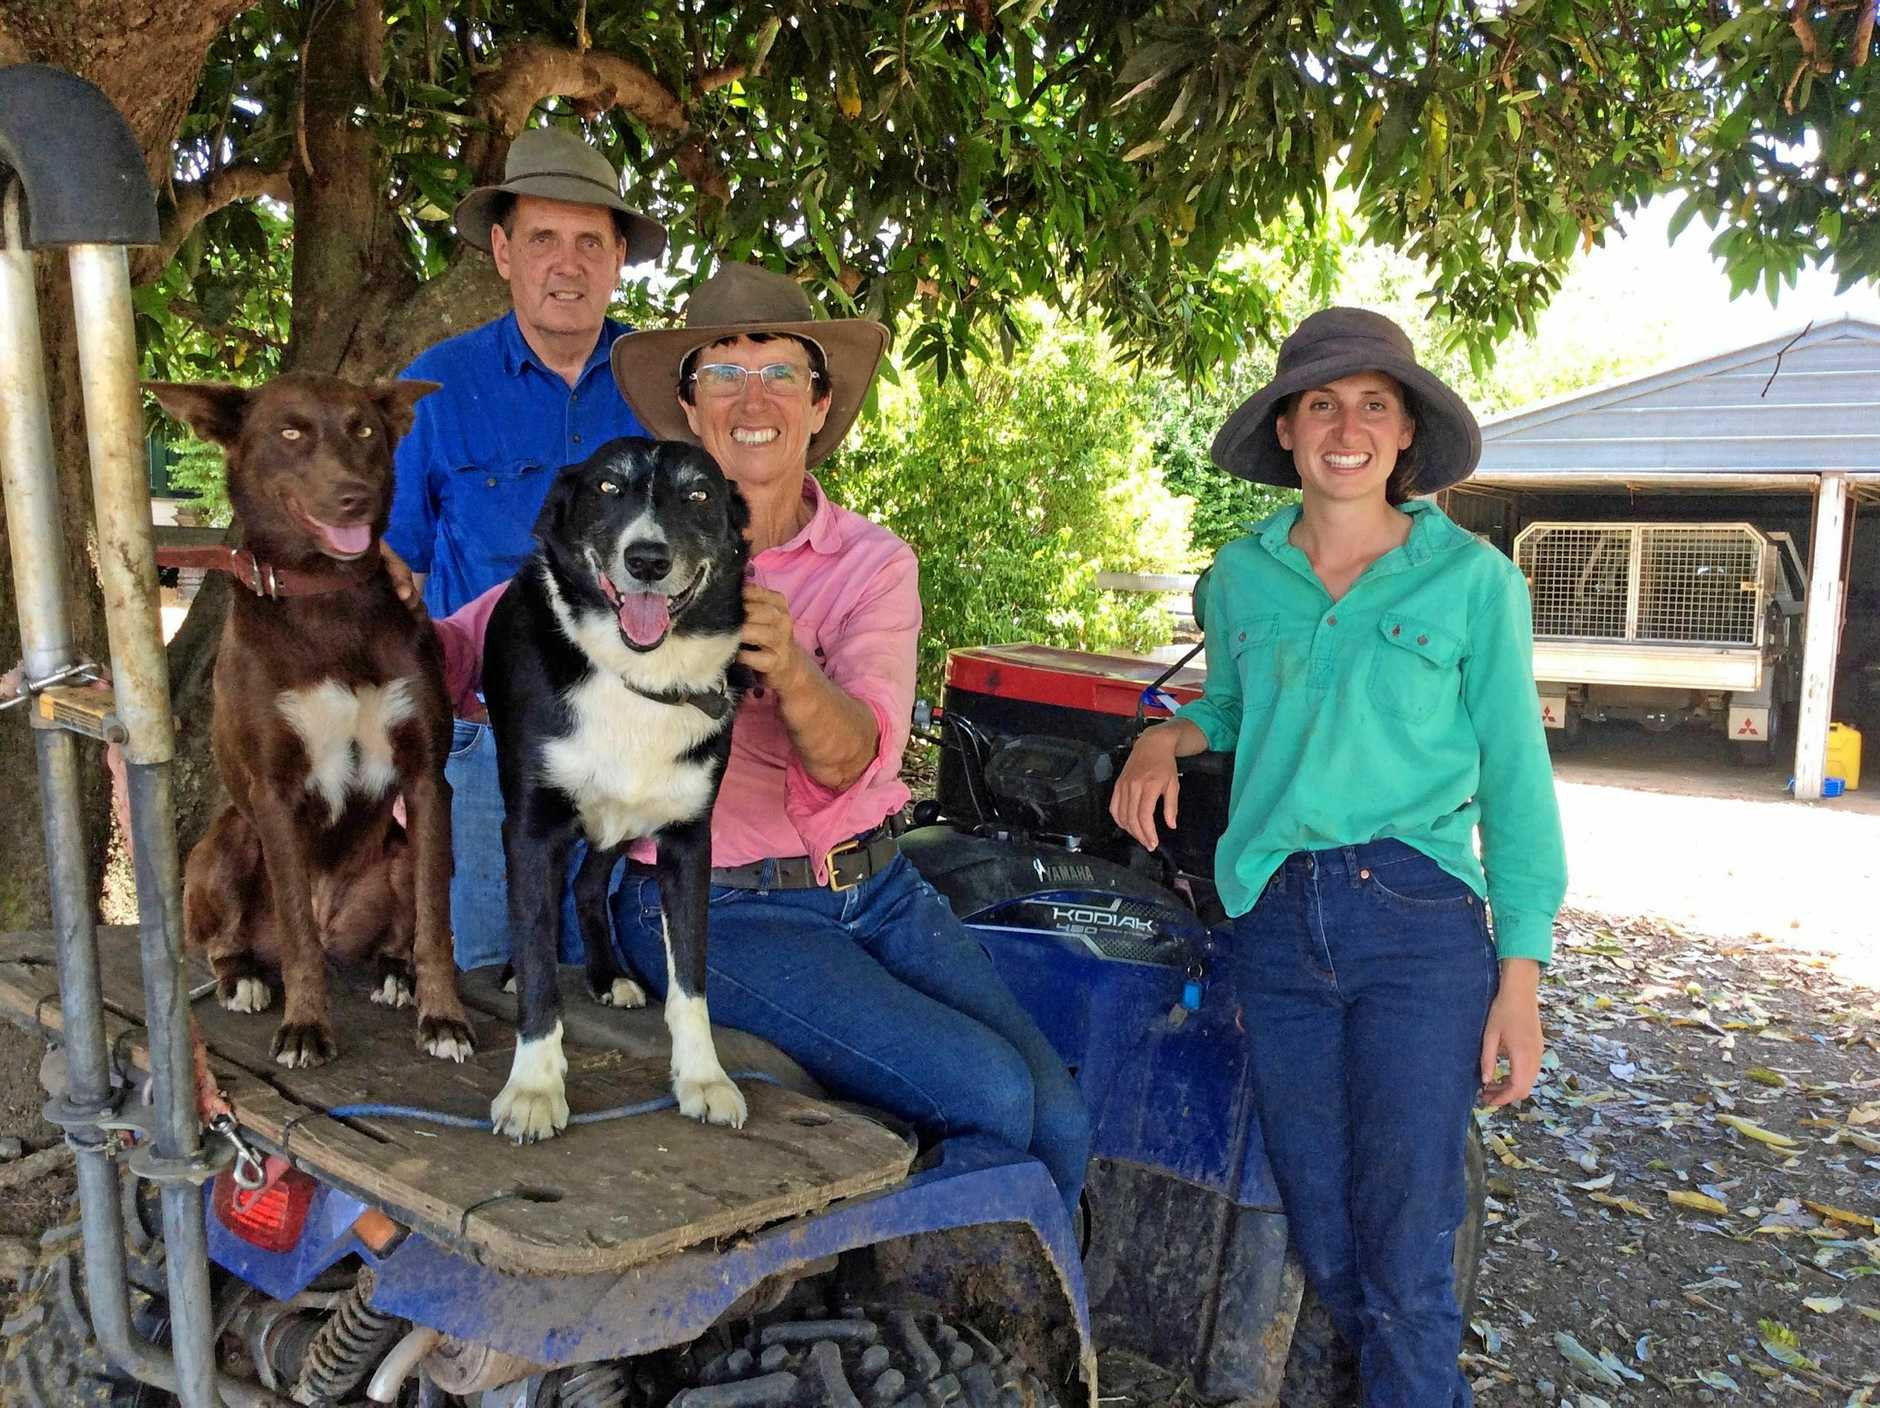 LOVING THE FARM: Sam, Fleur and Elizabeth Tonge with dogs Freddie and Wilmer at their Dobies Bight dairy farm, near Casino.